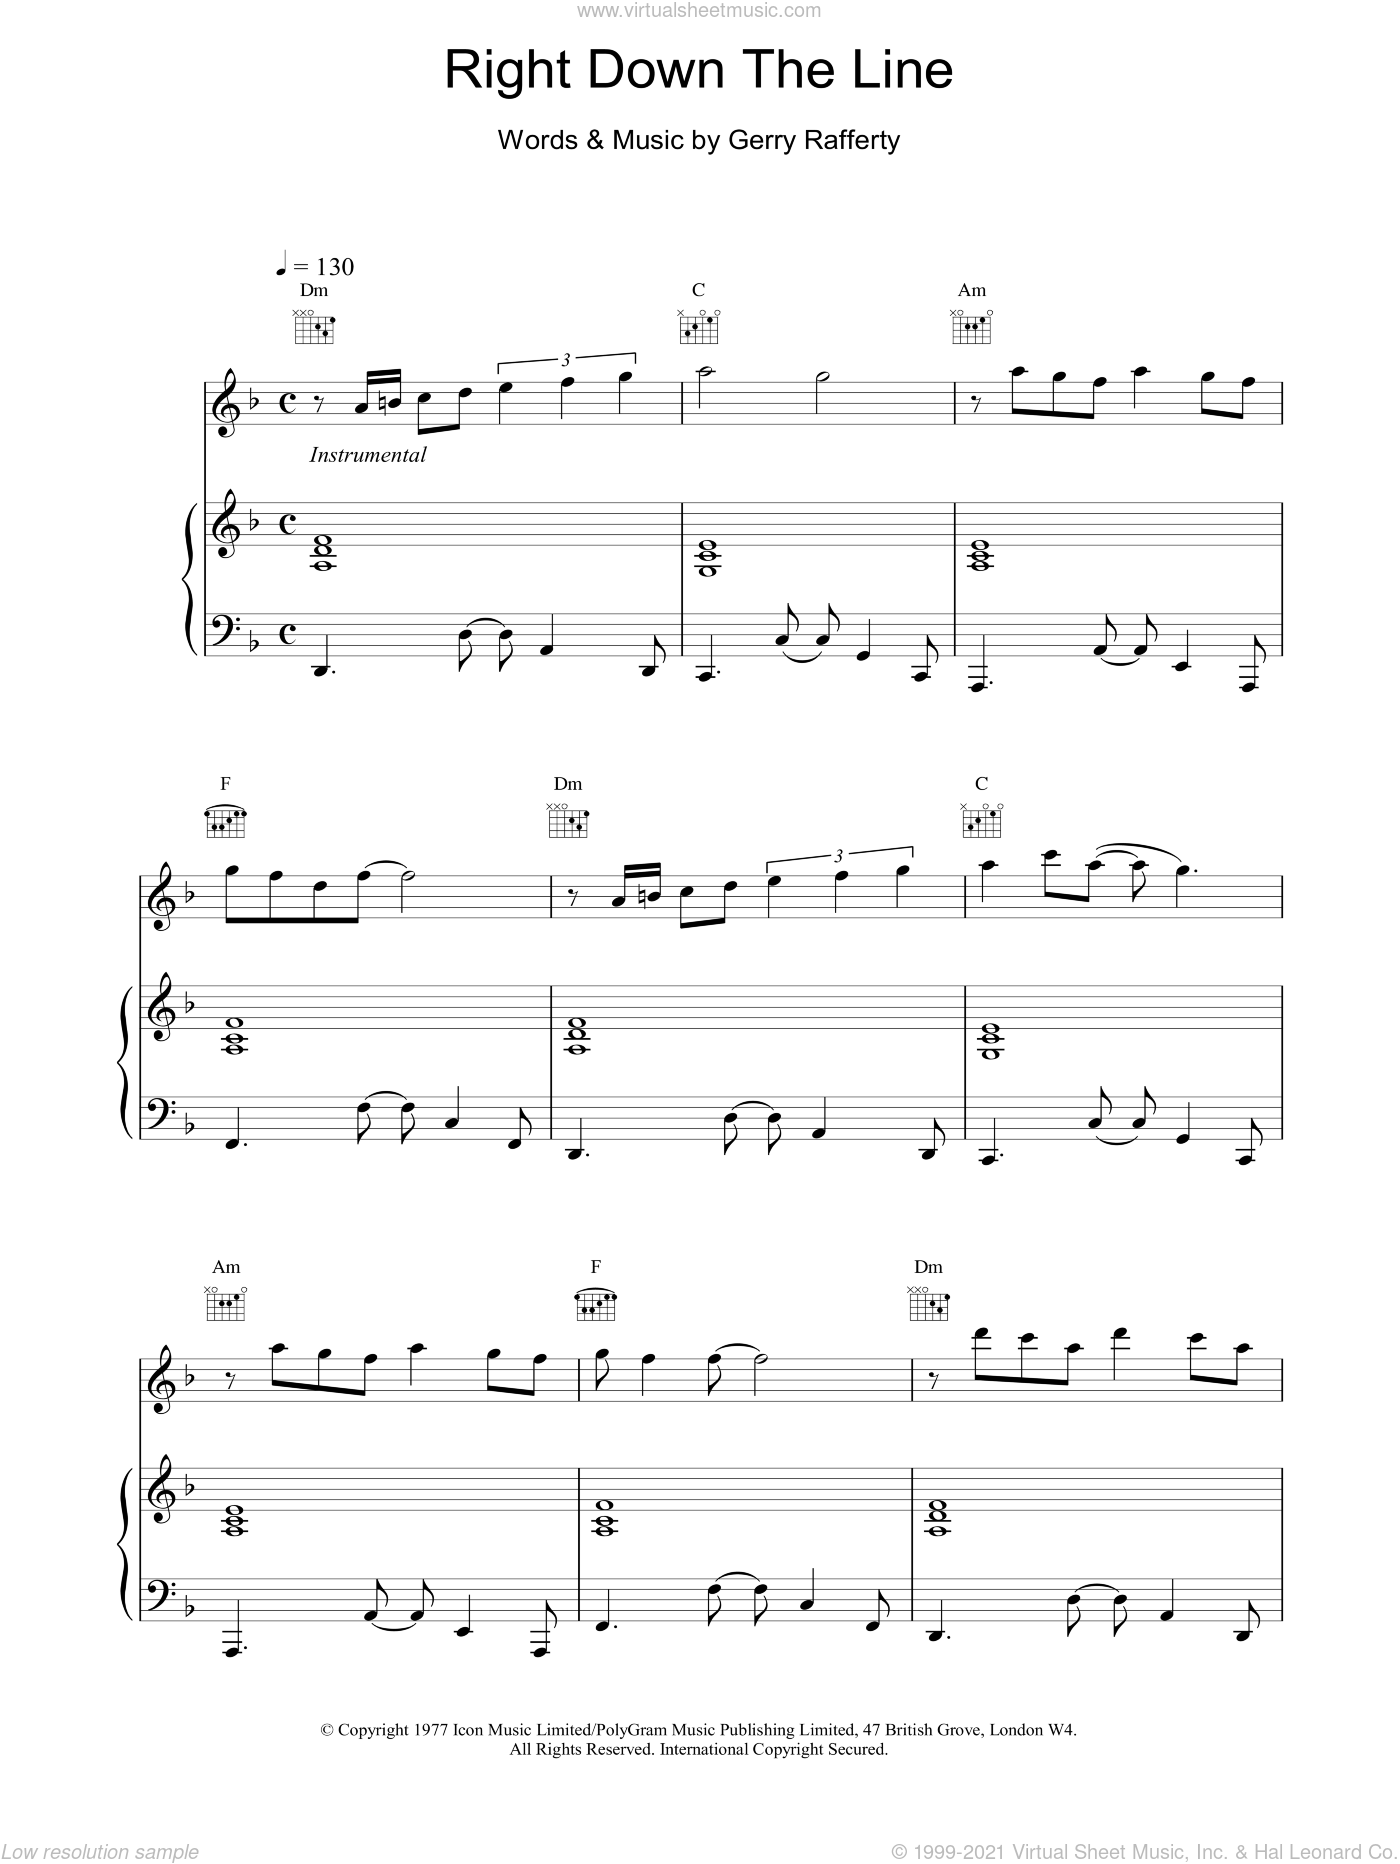 Right Down The Line sheet music for voice, piano or guitar by Gerry Rafferty, intermediate skill level